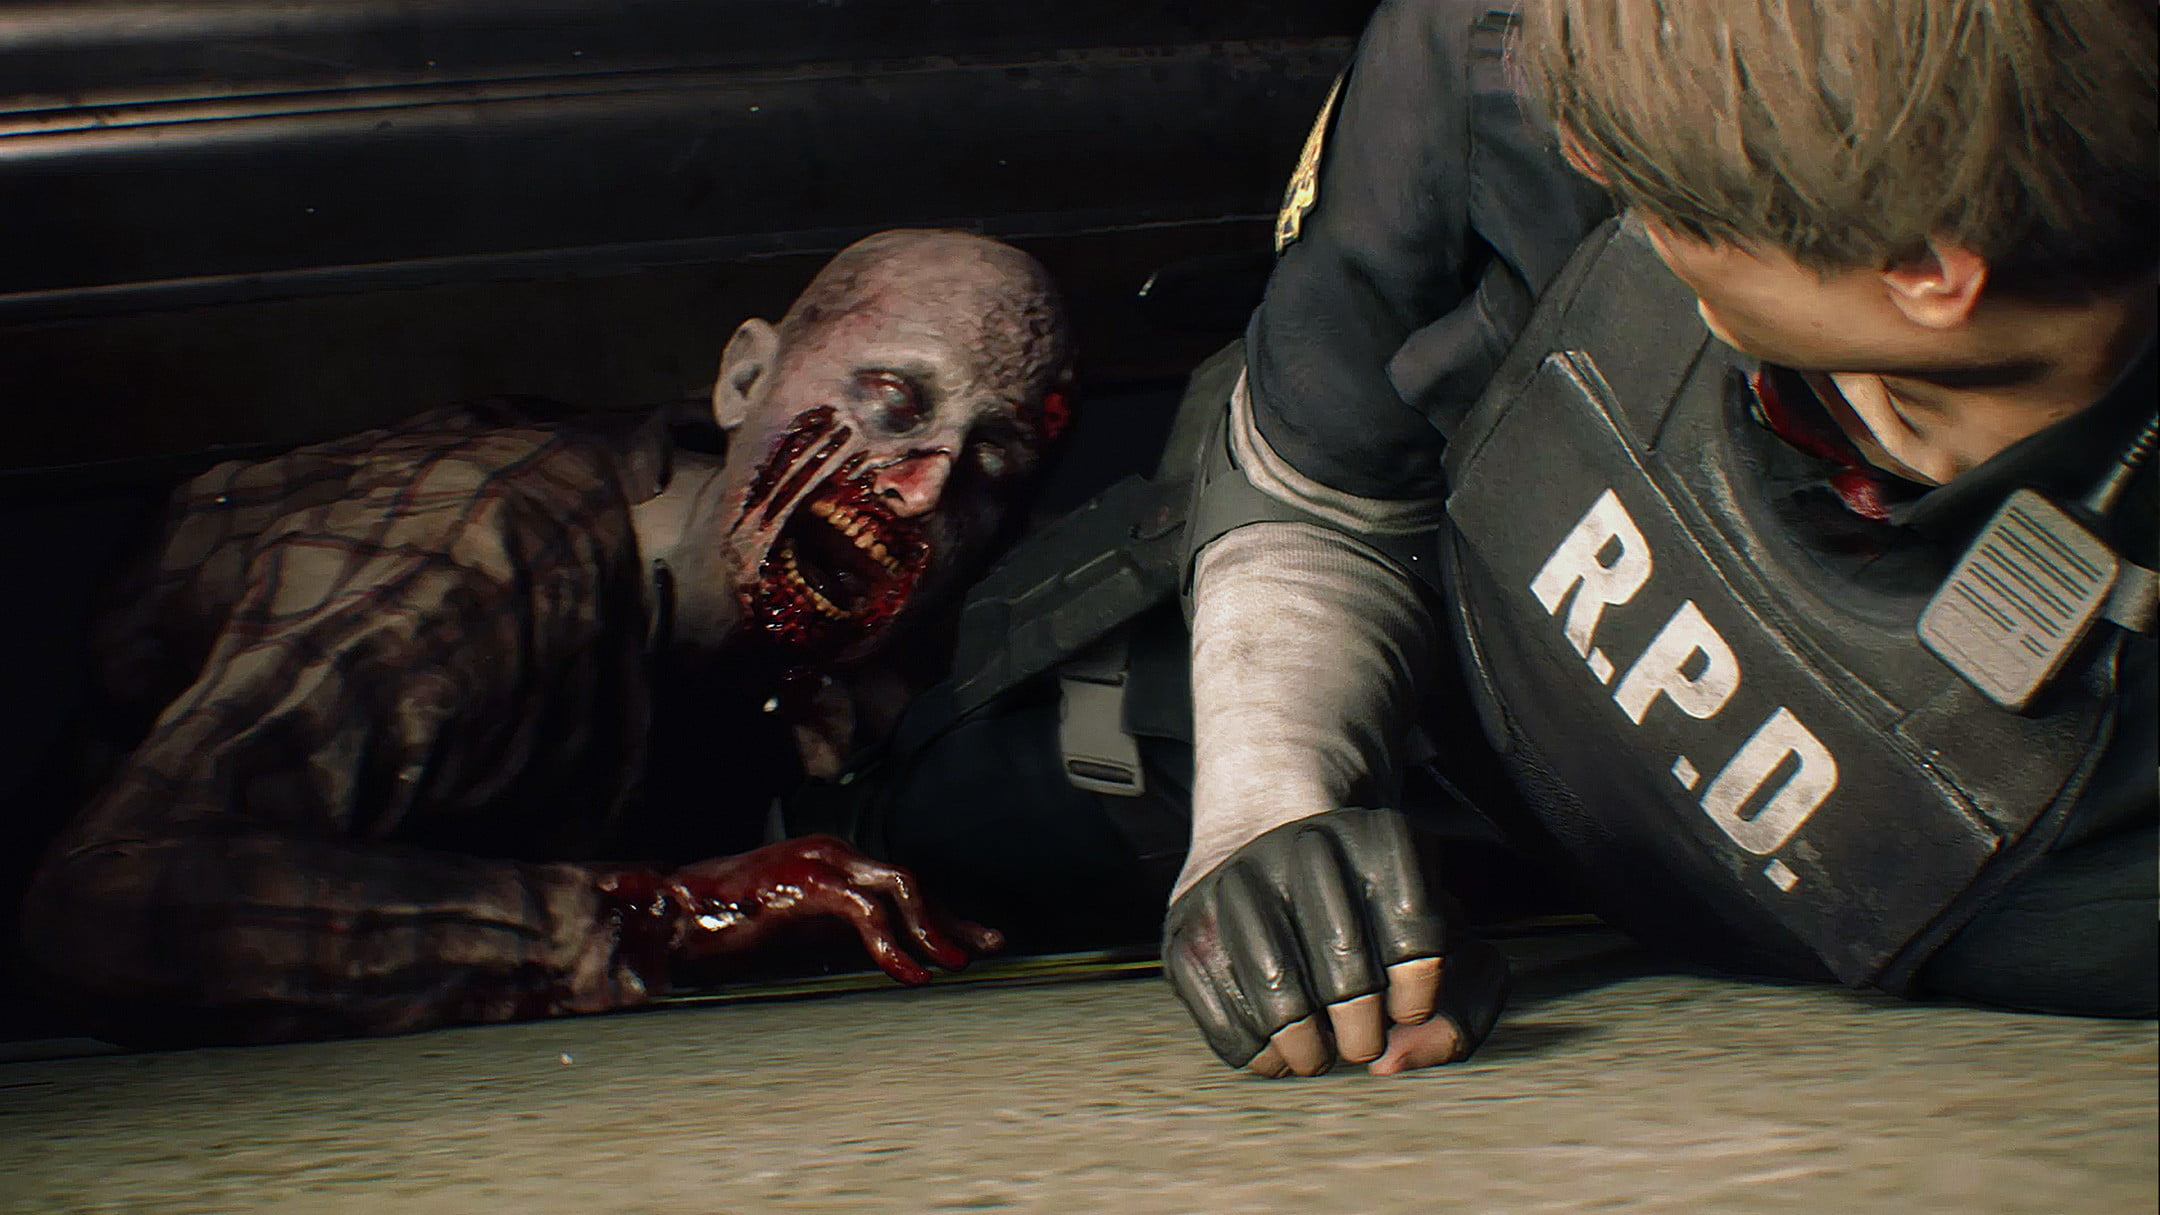 Resident Evil 2 takes home Ultimate Game of the Year at Golden Joystick Awards